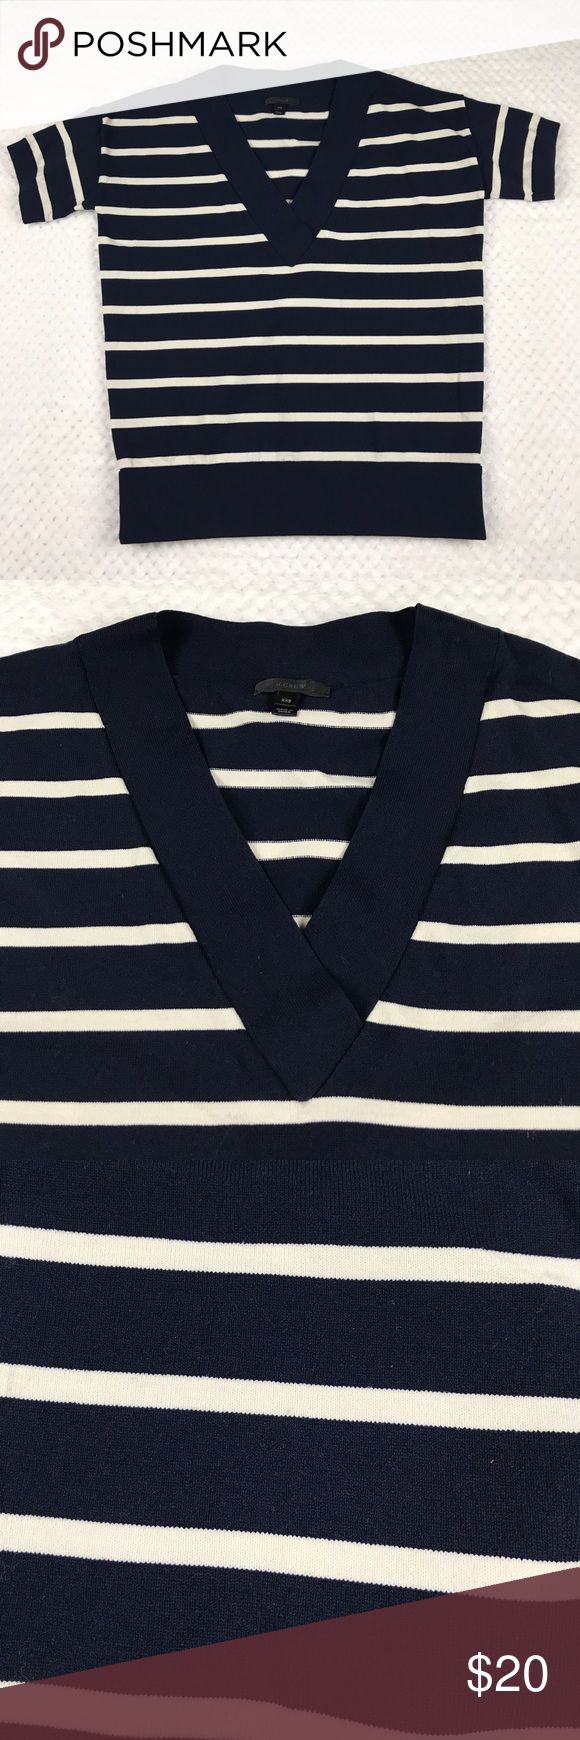 J. Crew V-neck Pullover - XXS J. Crew pullover in good preowned condition.  Size xxs.  Blue with tan stripes.  Light pilling & fading. J. Crew Tops